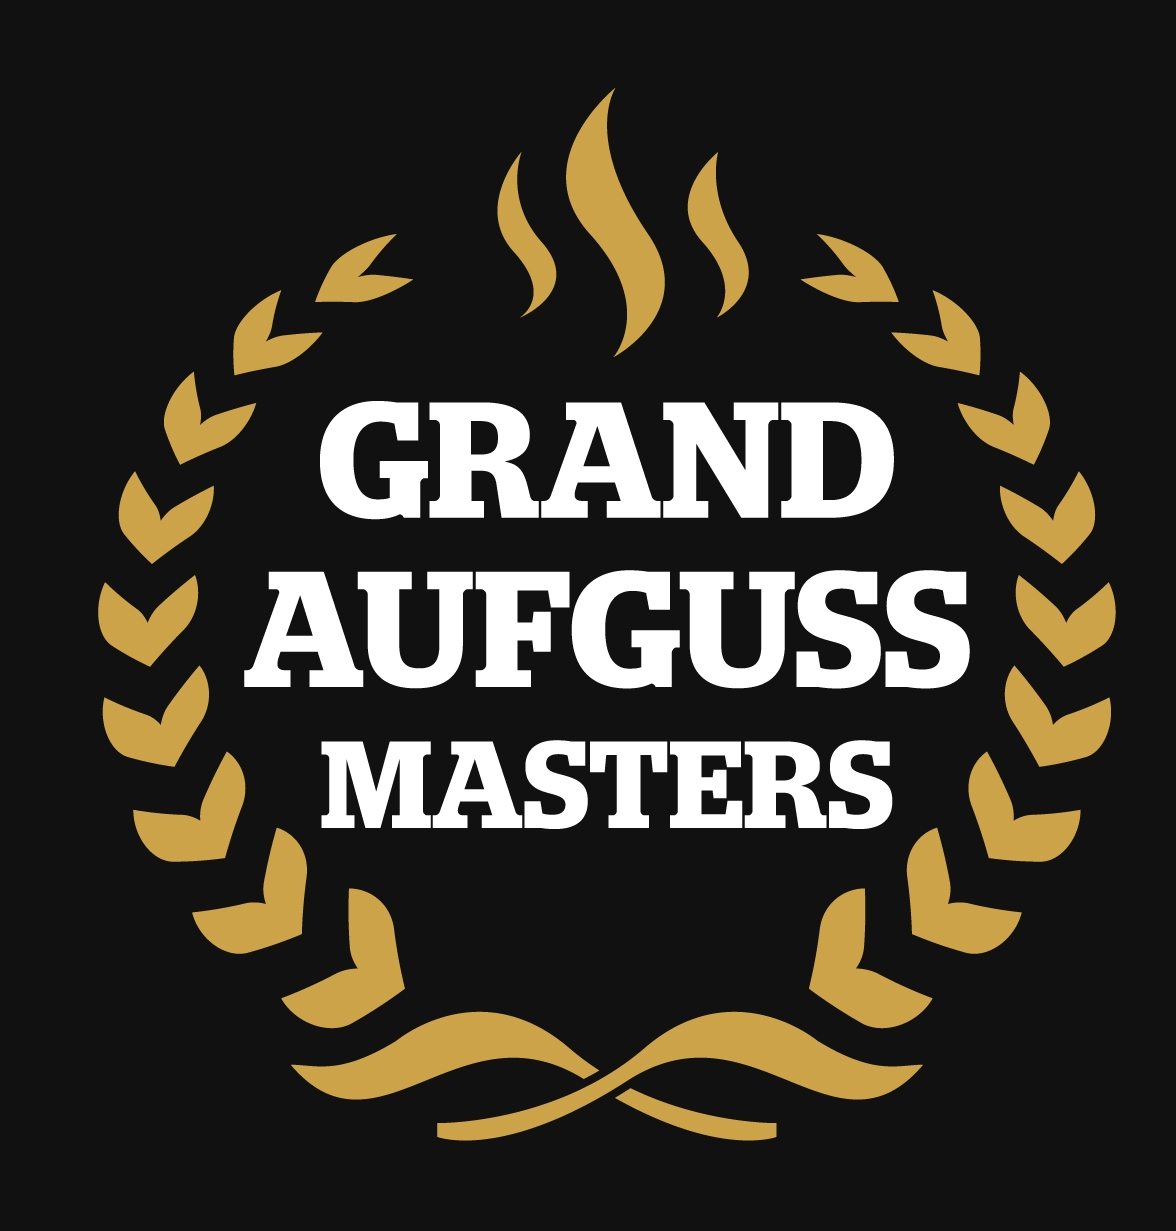 GRAND AUFGUSS MASTERS